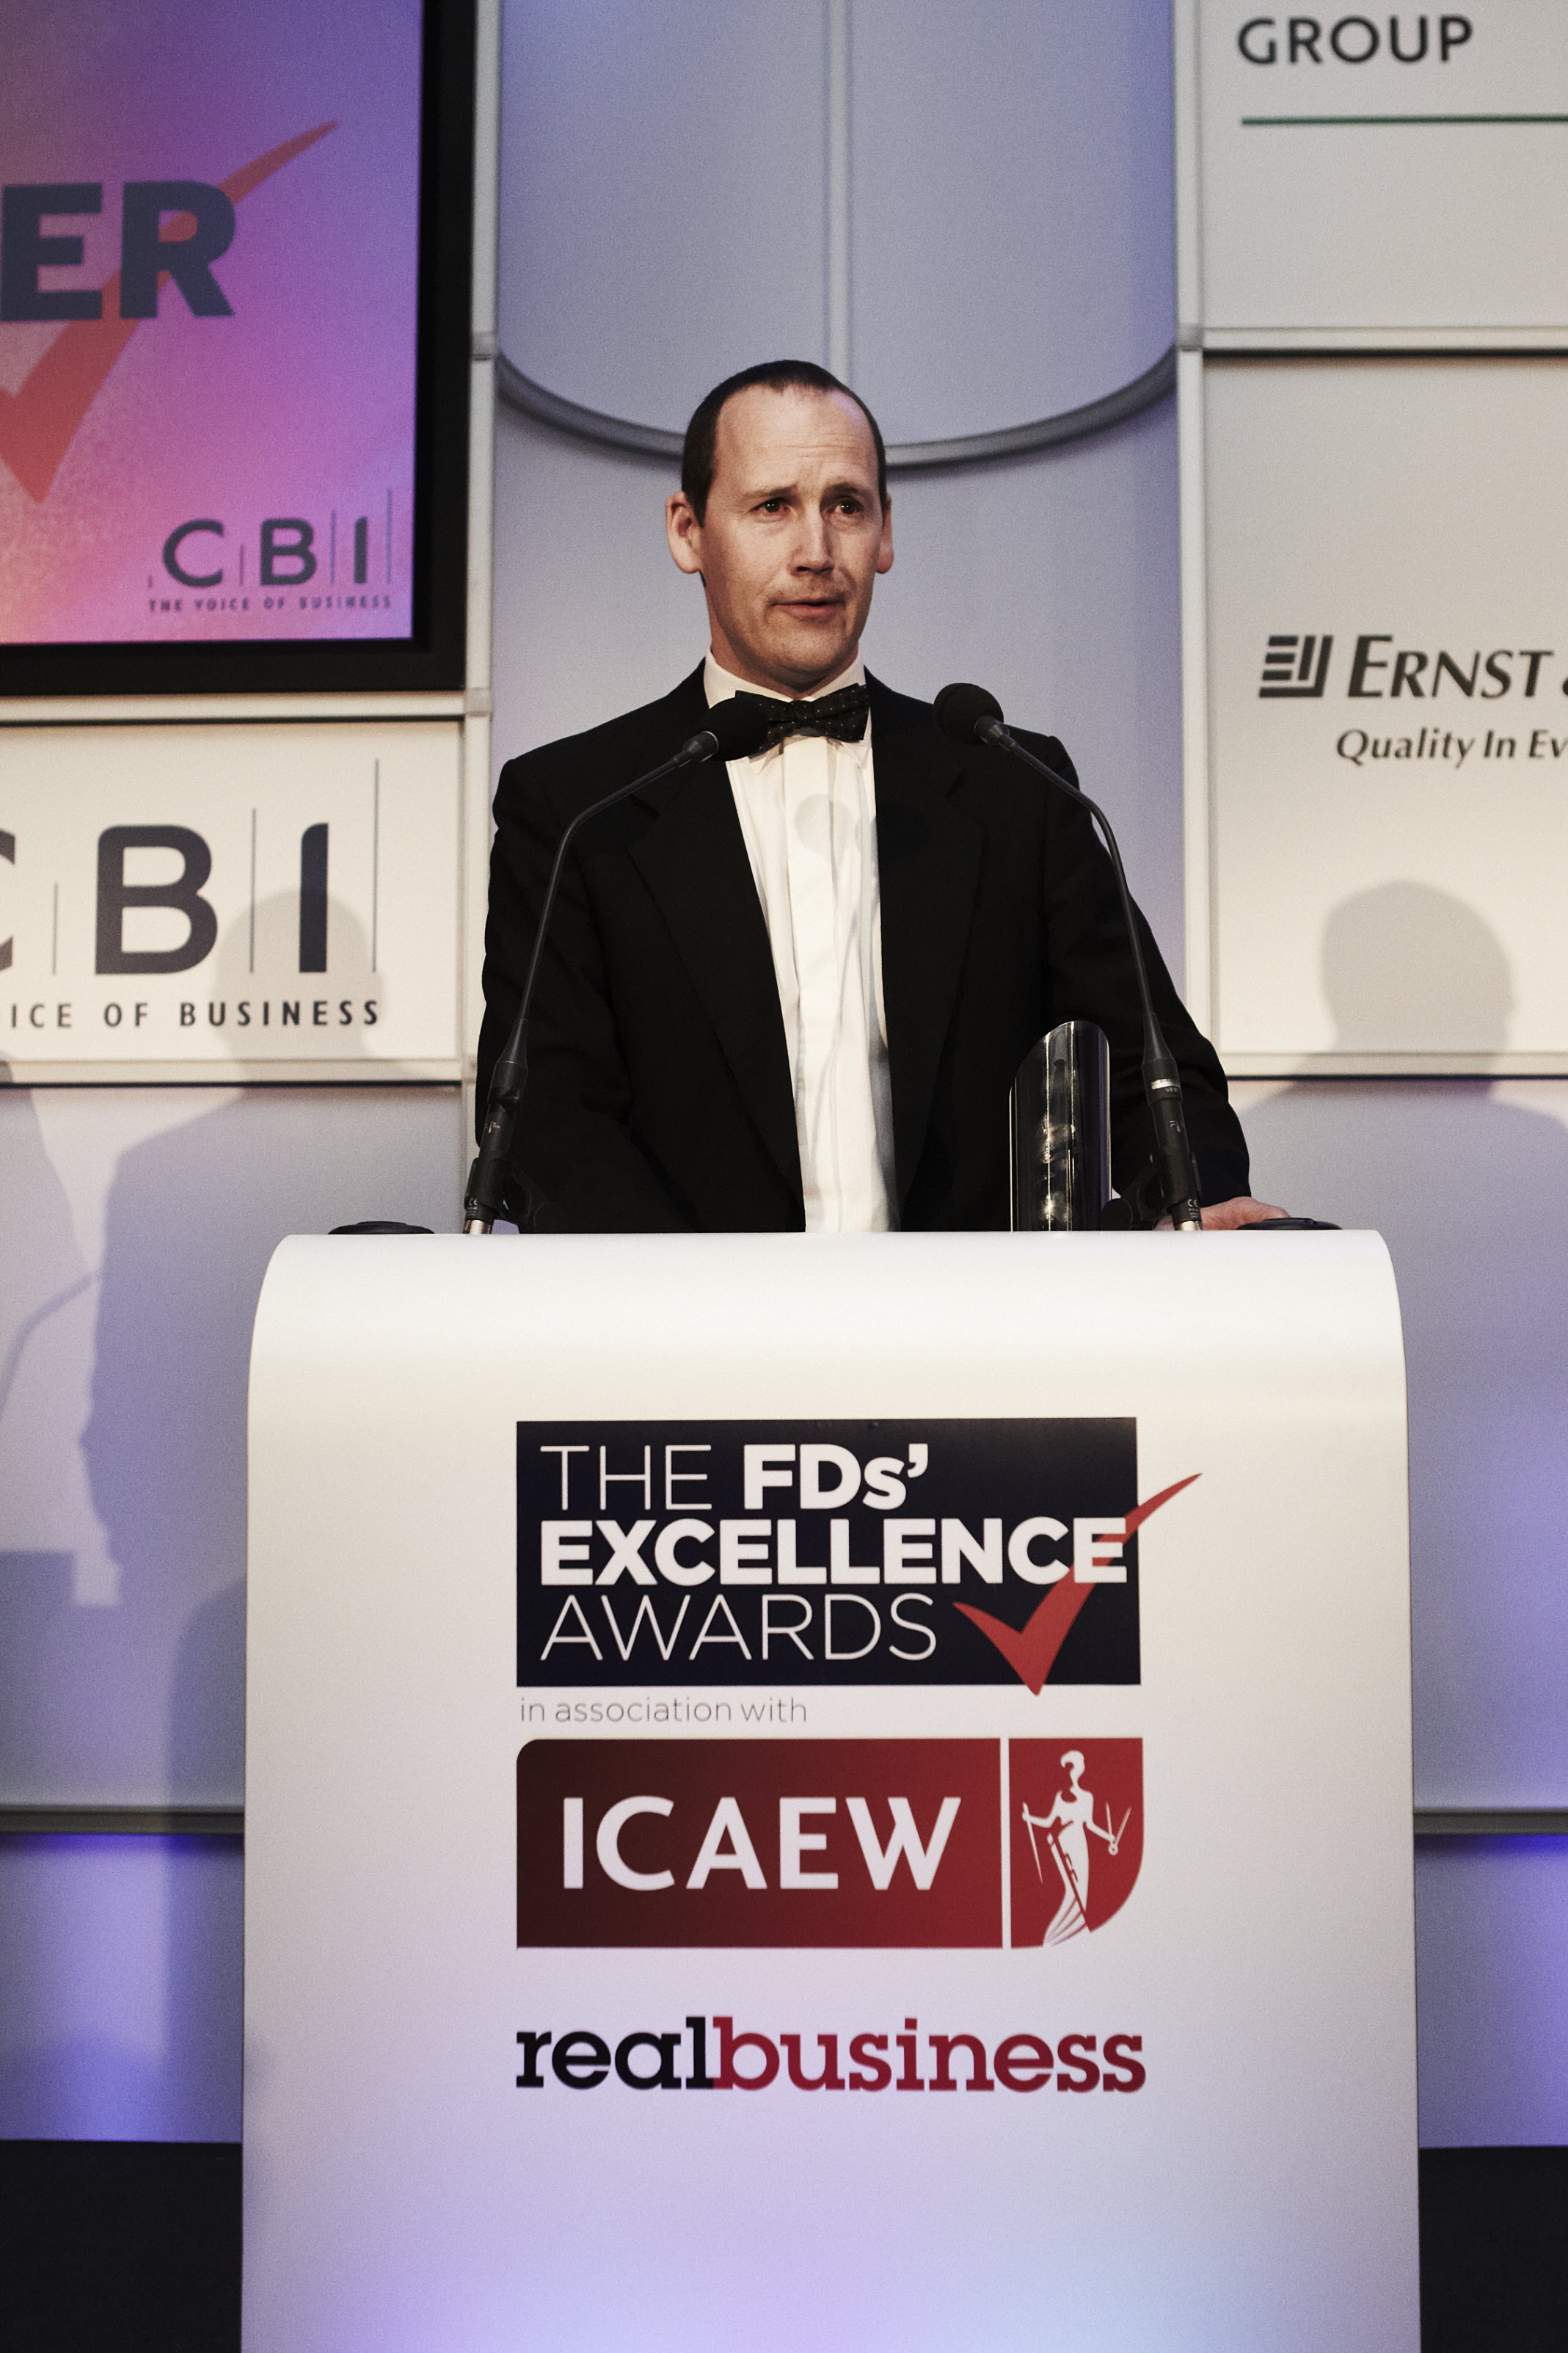 FDs' Excellence Awards 2011: winners